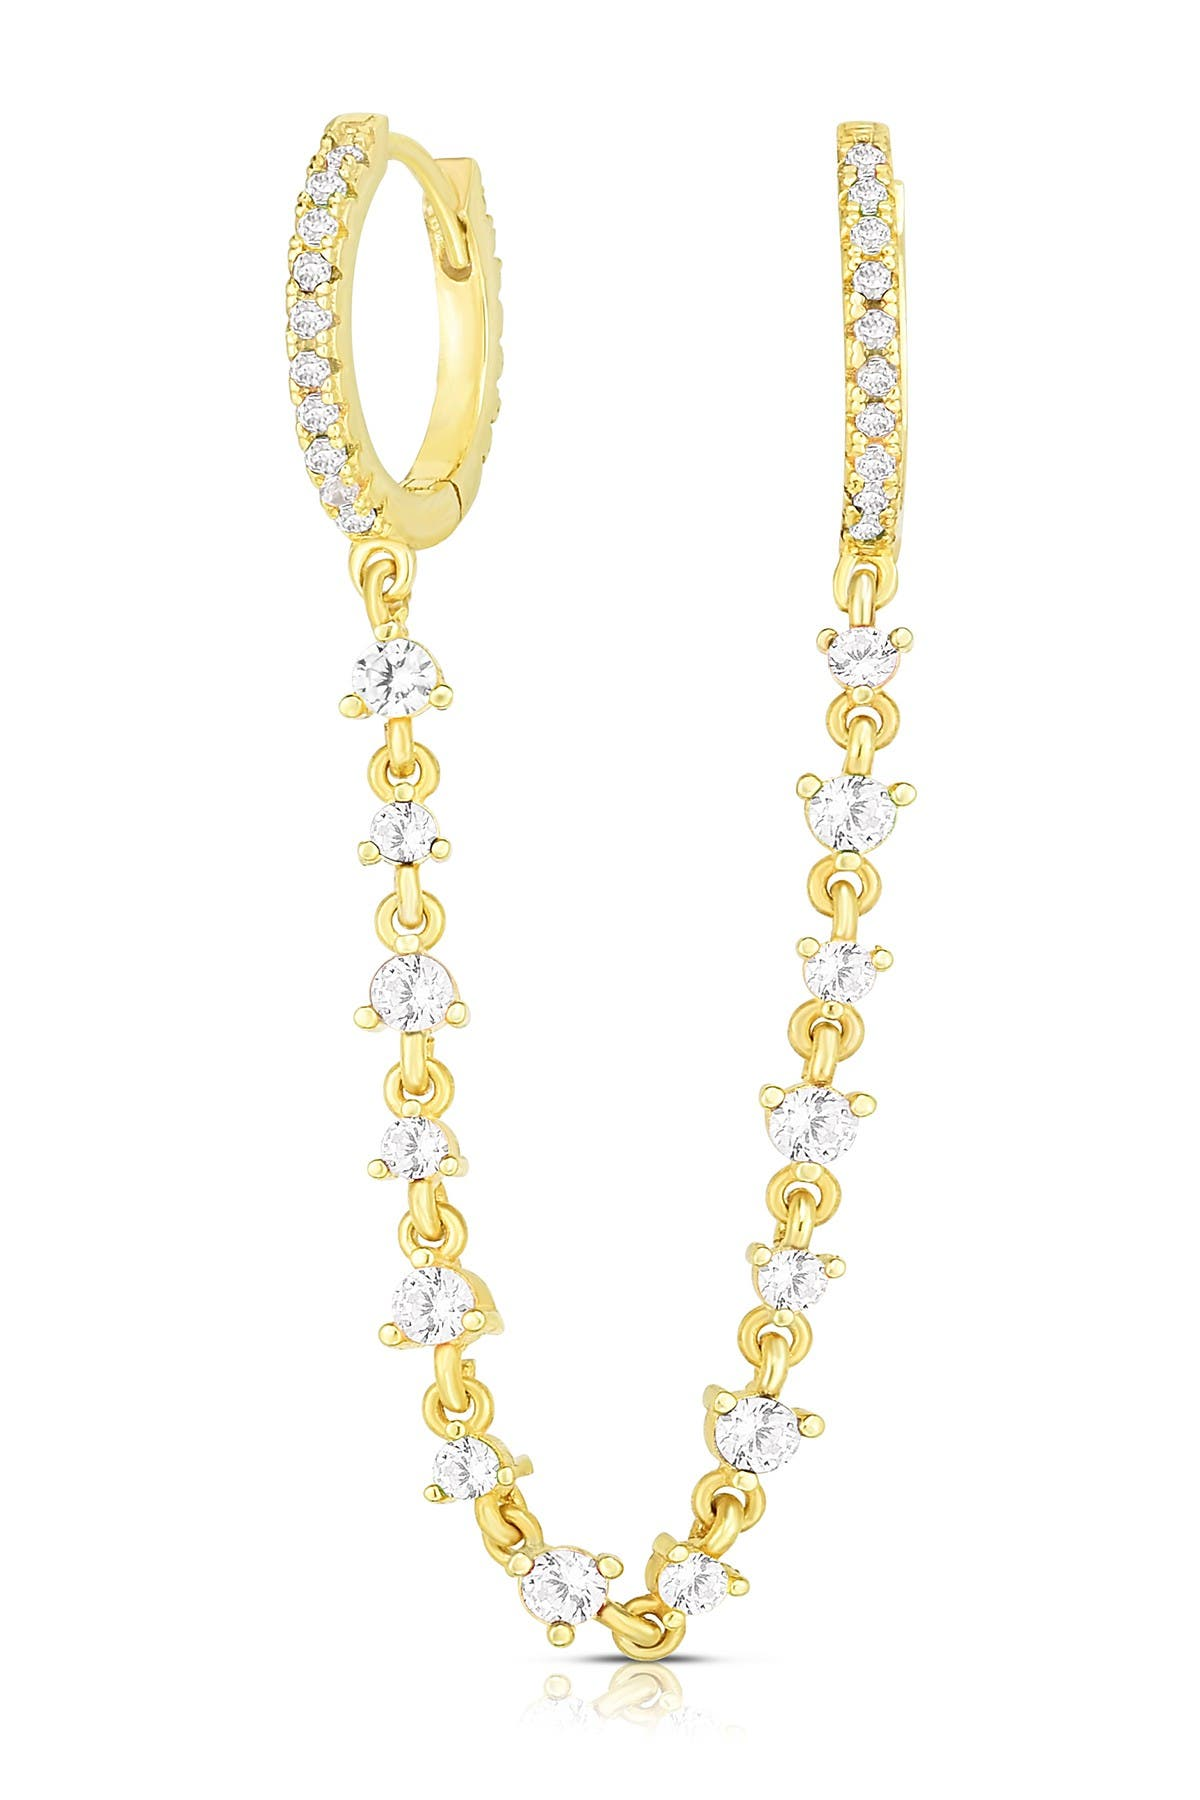 Image of Sphera Milano 14K Yellow Gold Plated Sterling Silver CZ Connecting Chain Huggie Earring